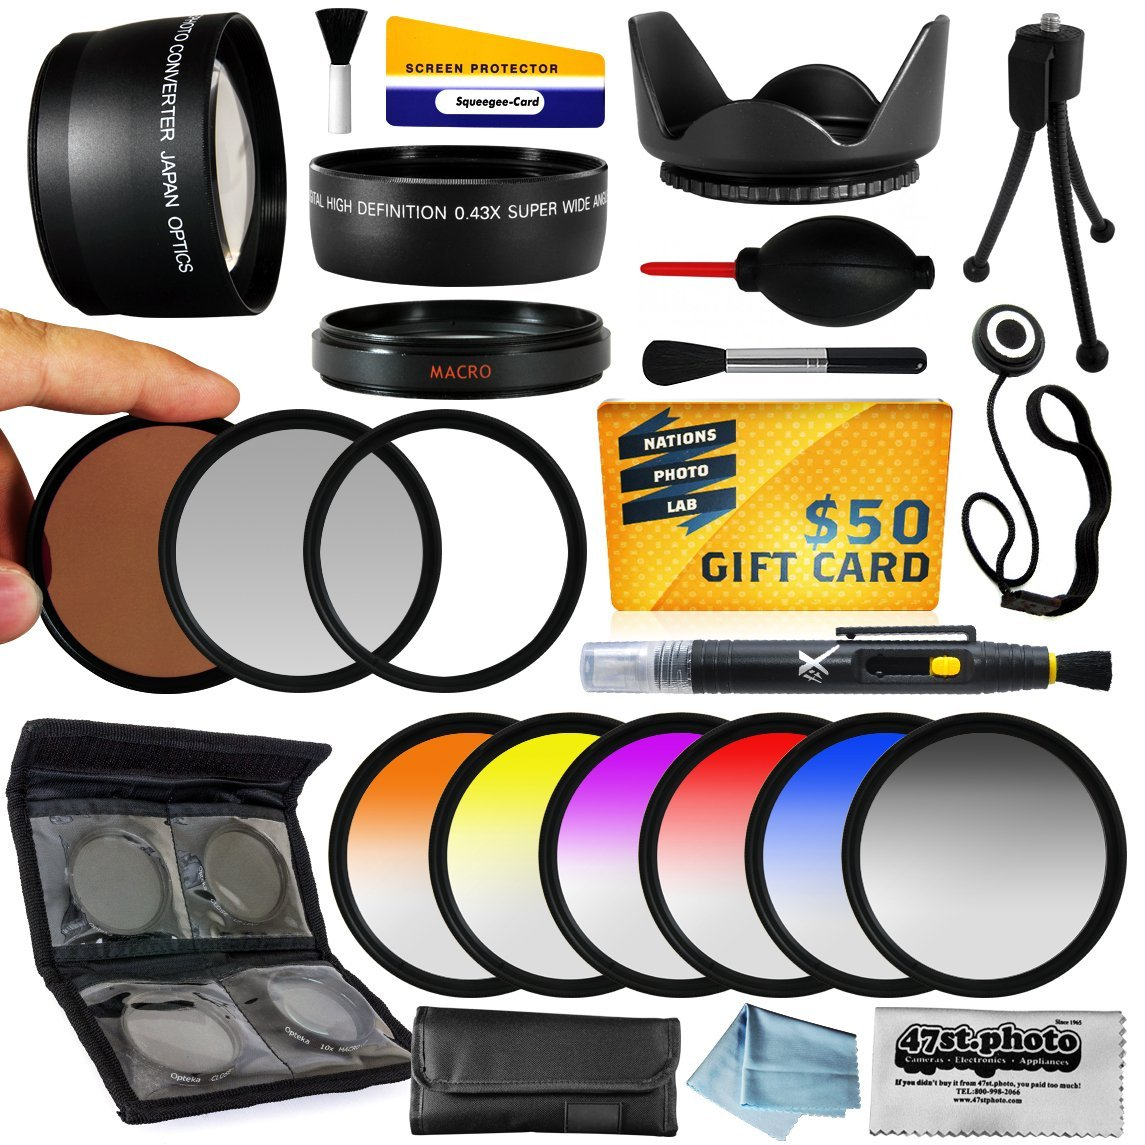 25 Piece Advanced Lens Package For The Nikon D7100 D7000 D5000 D5300 D5100 D3000 D40 D90 D300 18-200mm 28-135mm 24-120mm AF-S Lenses Includes 72MM 0.43X + 2.2x + Filter Kit + $50 Photo Gift Card!